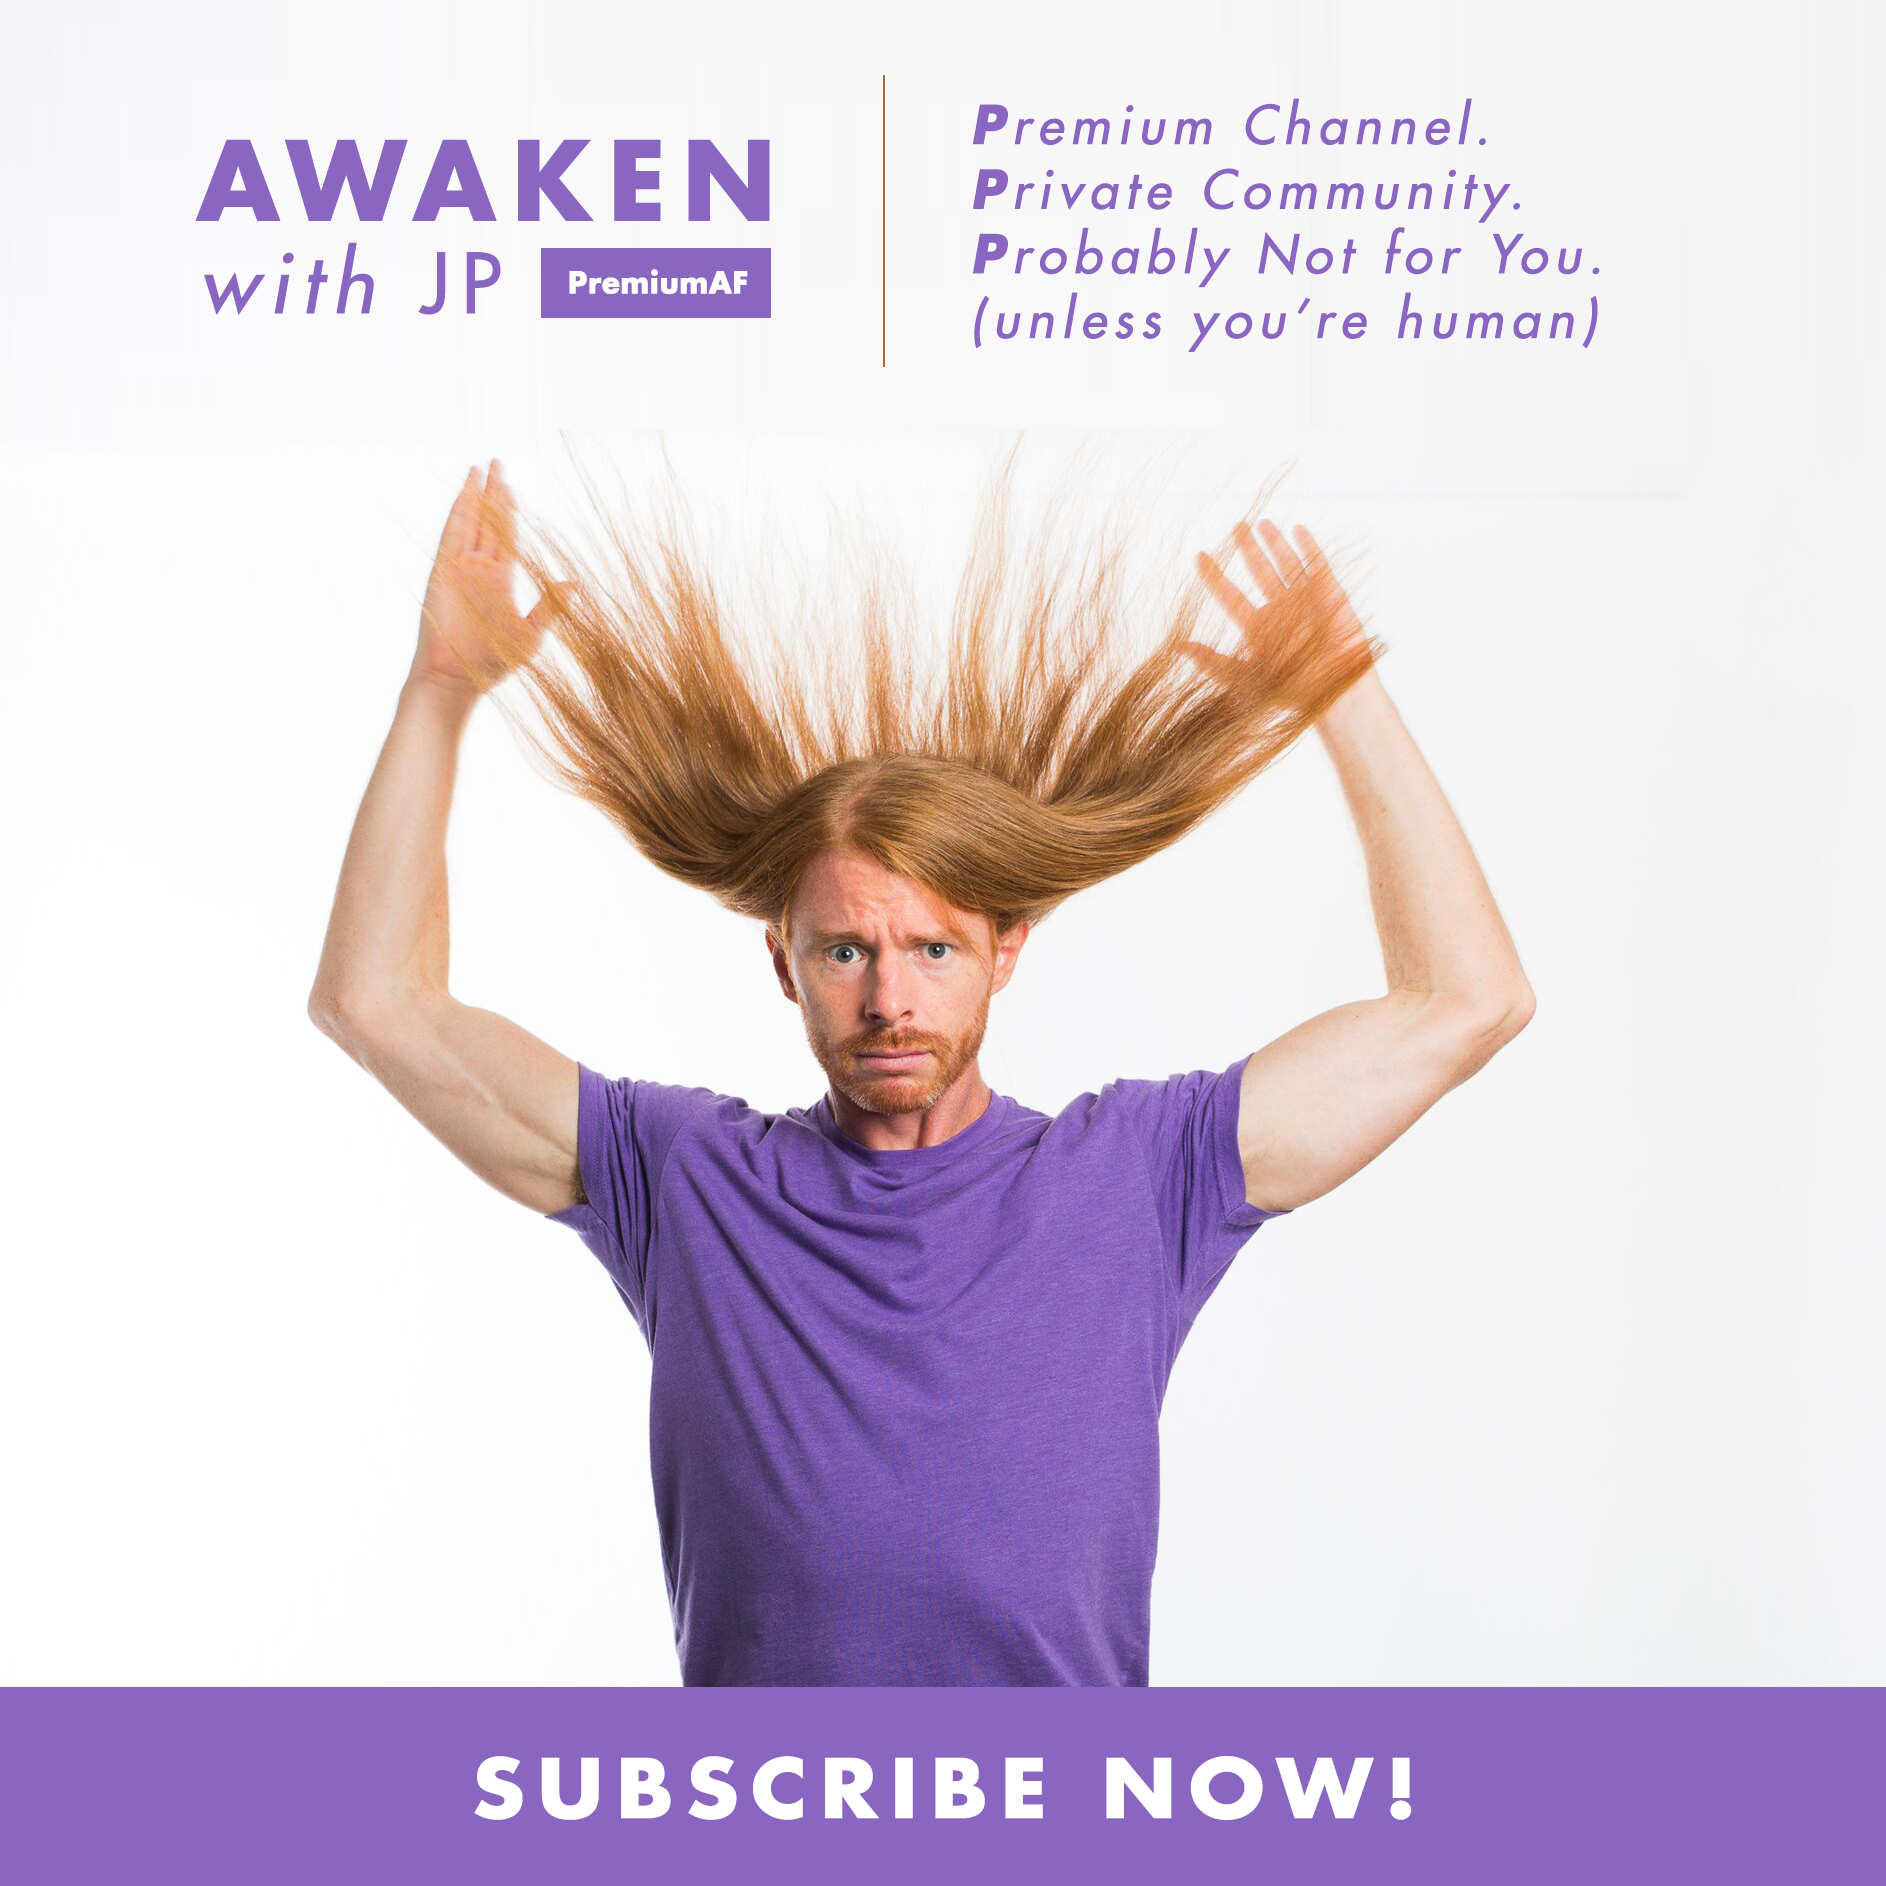 subscribe-now.jpg